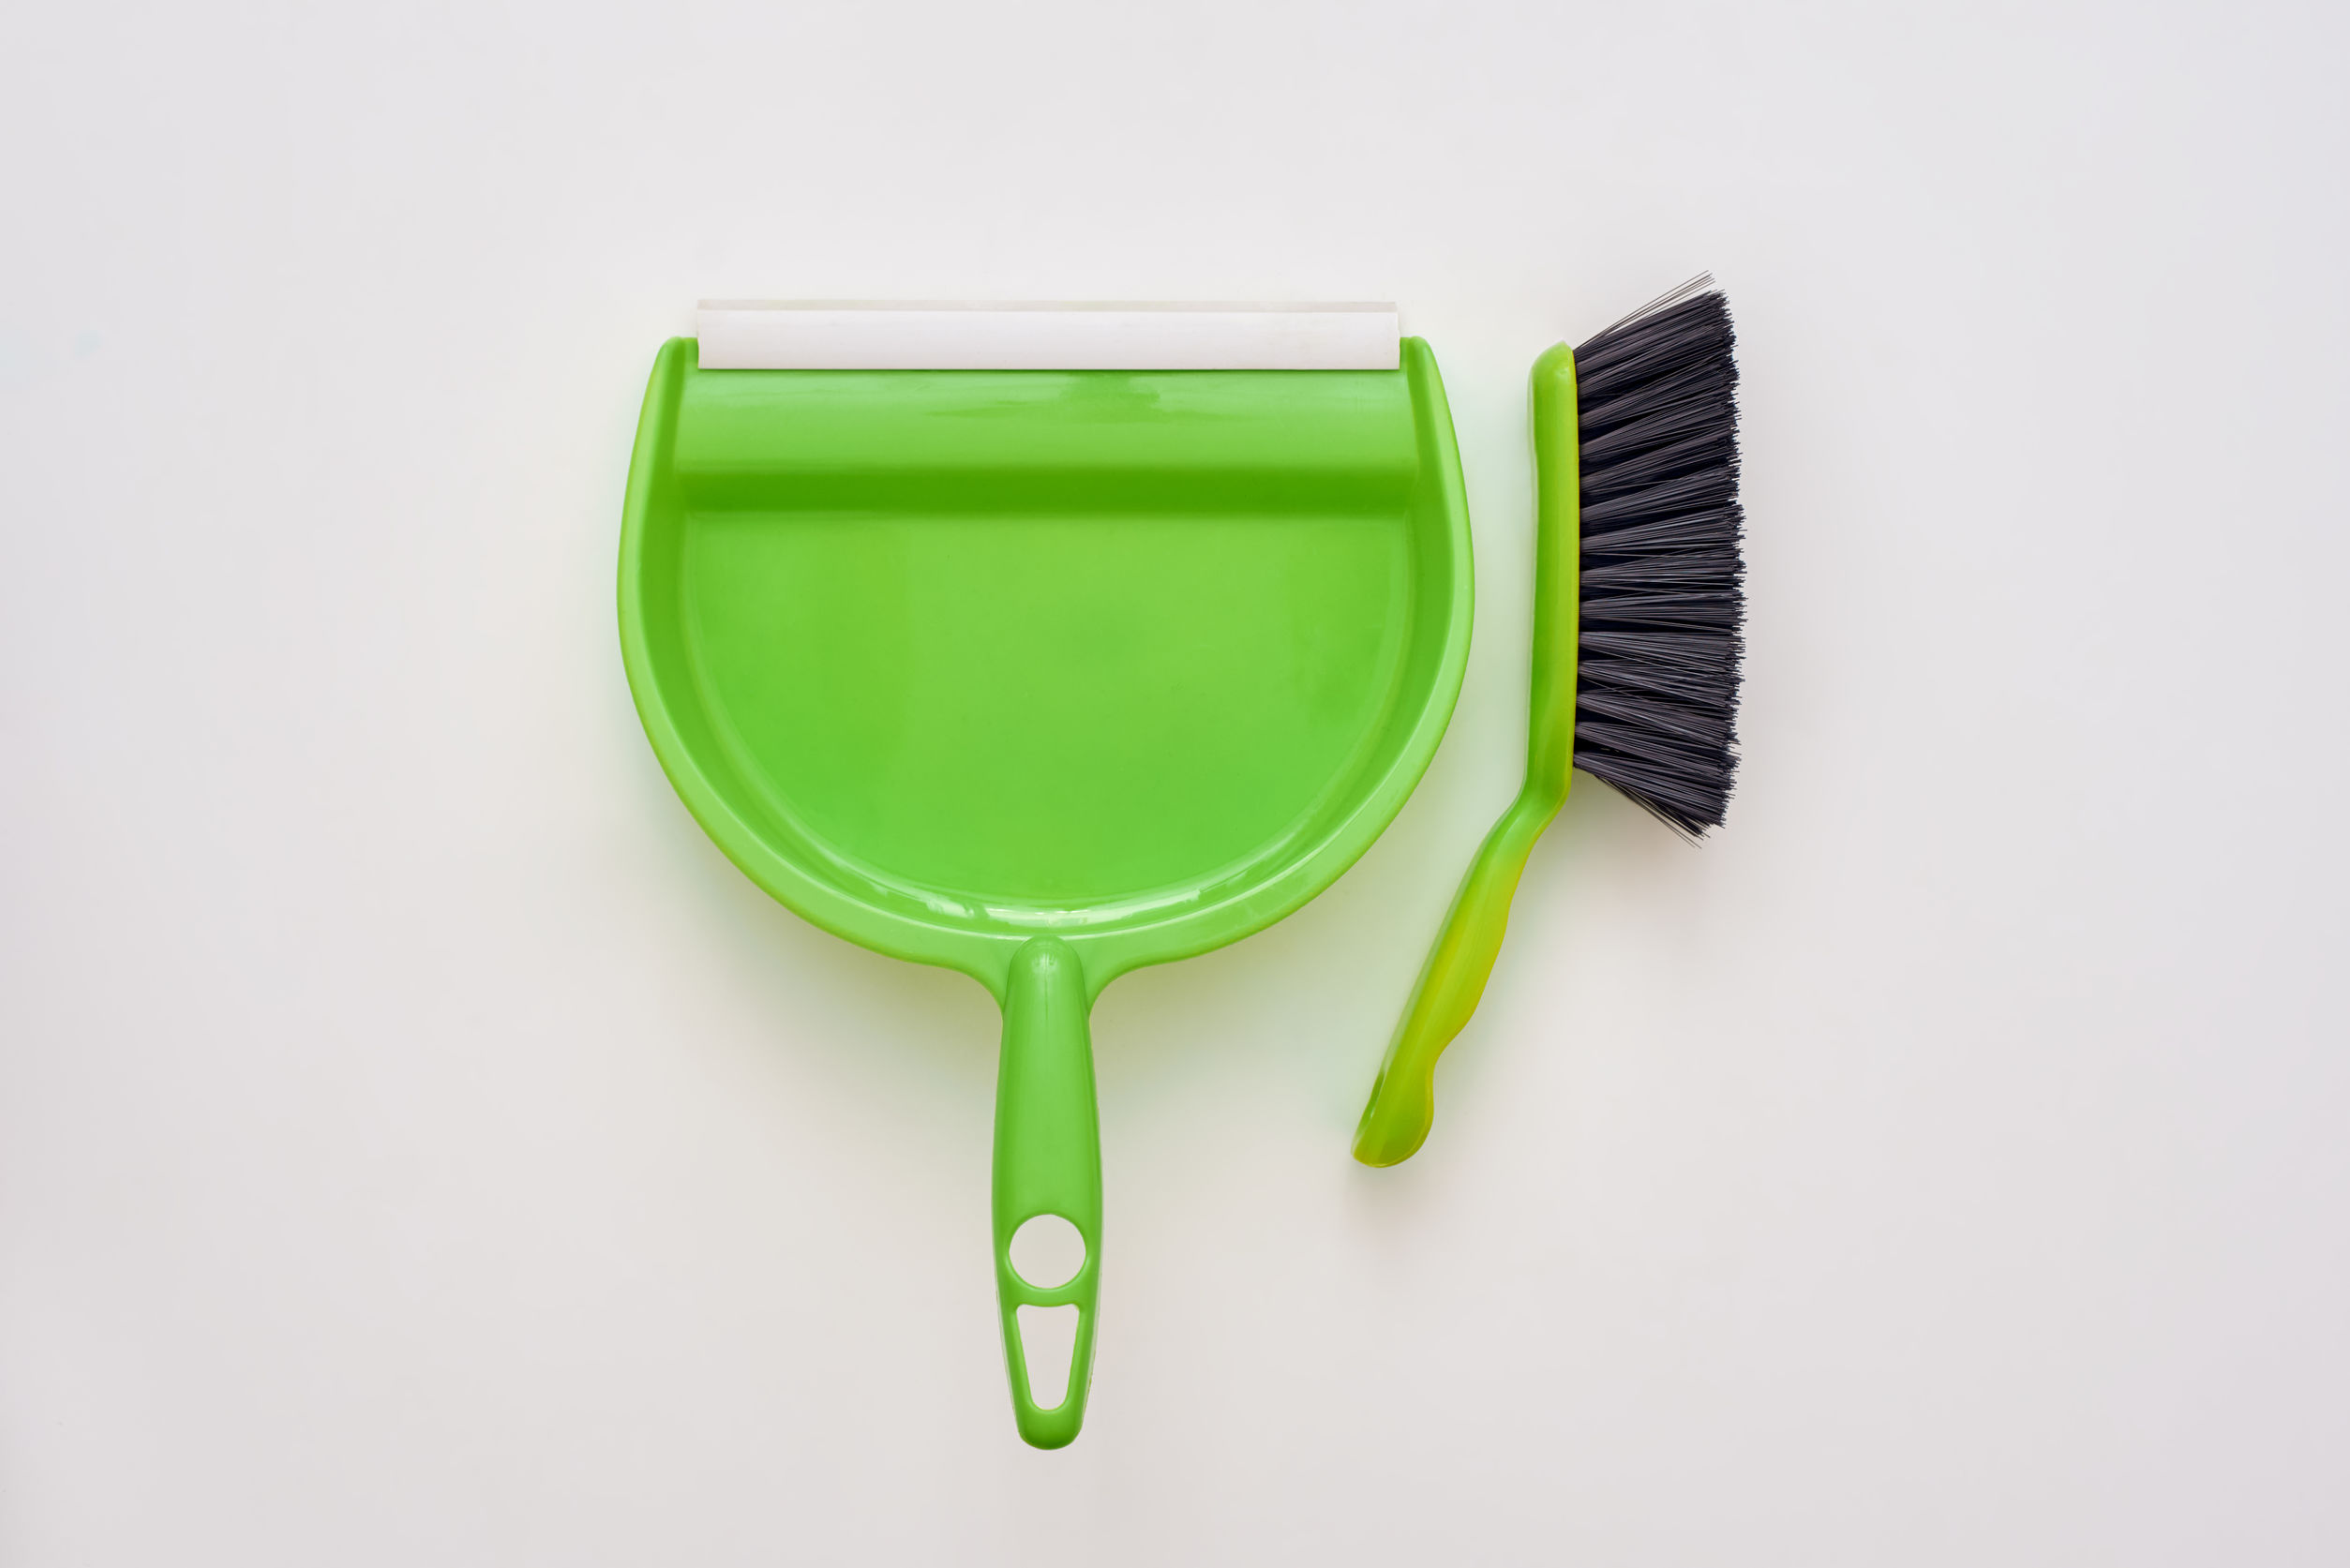 Floor cleaning tools. Brush and dustpan